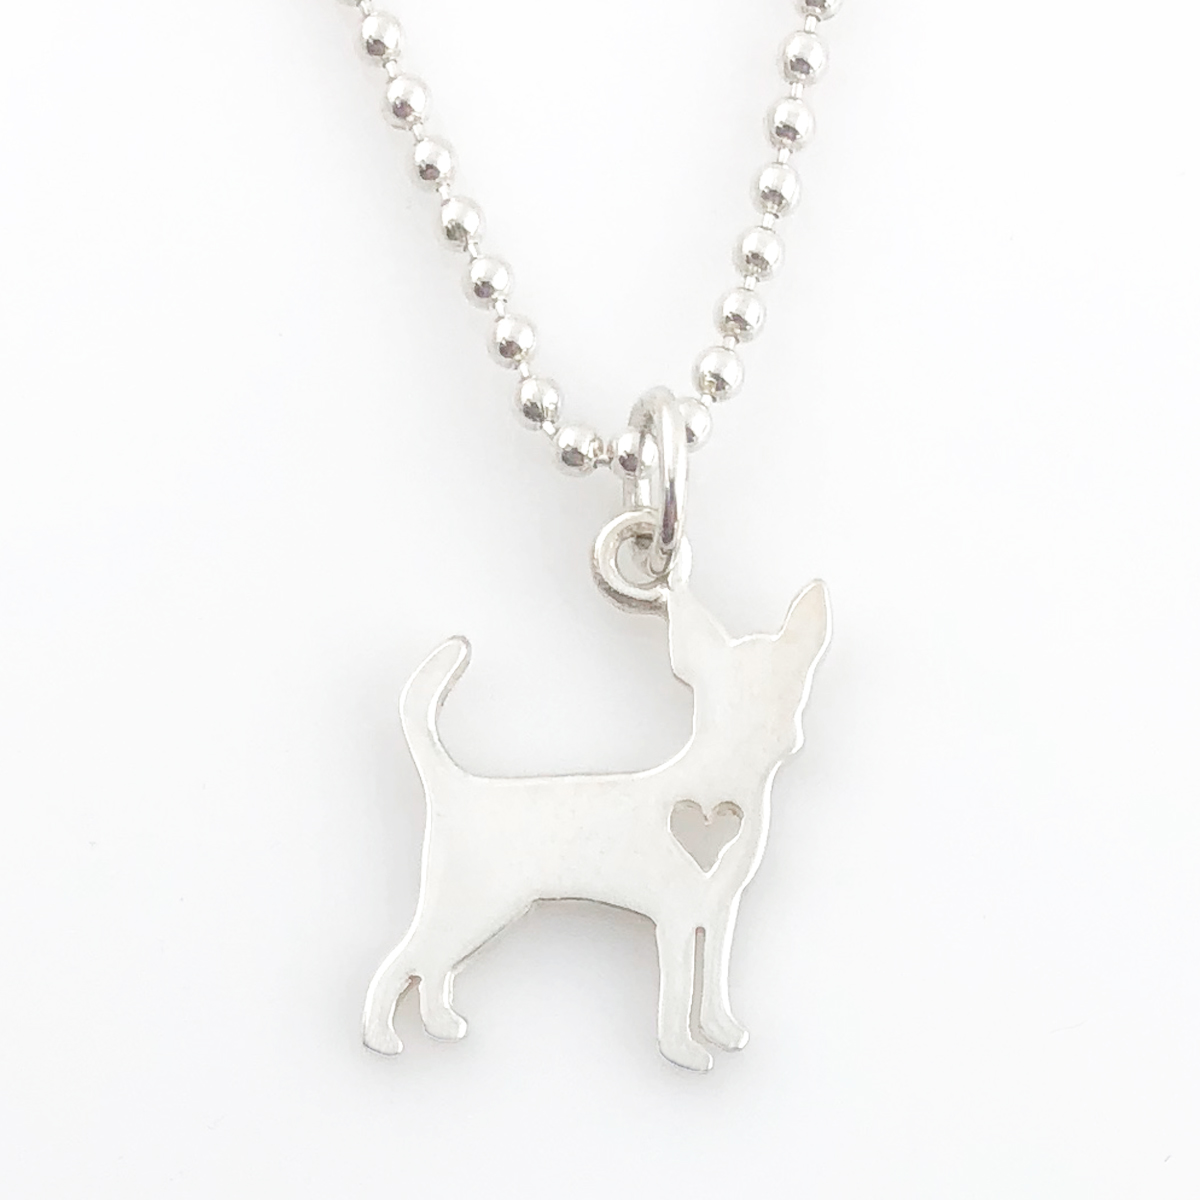 Dog | Chihuahua Simple Charm Necklace - Dog Necklace (Ready to Ship)